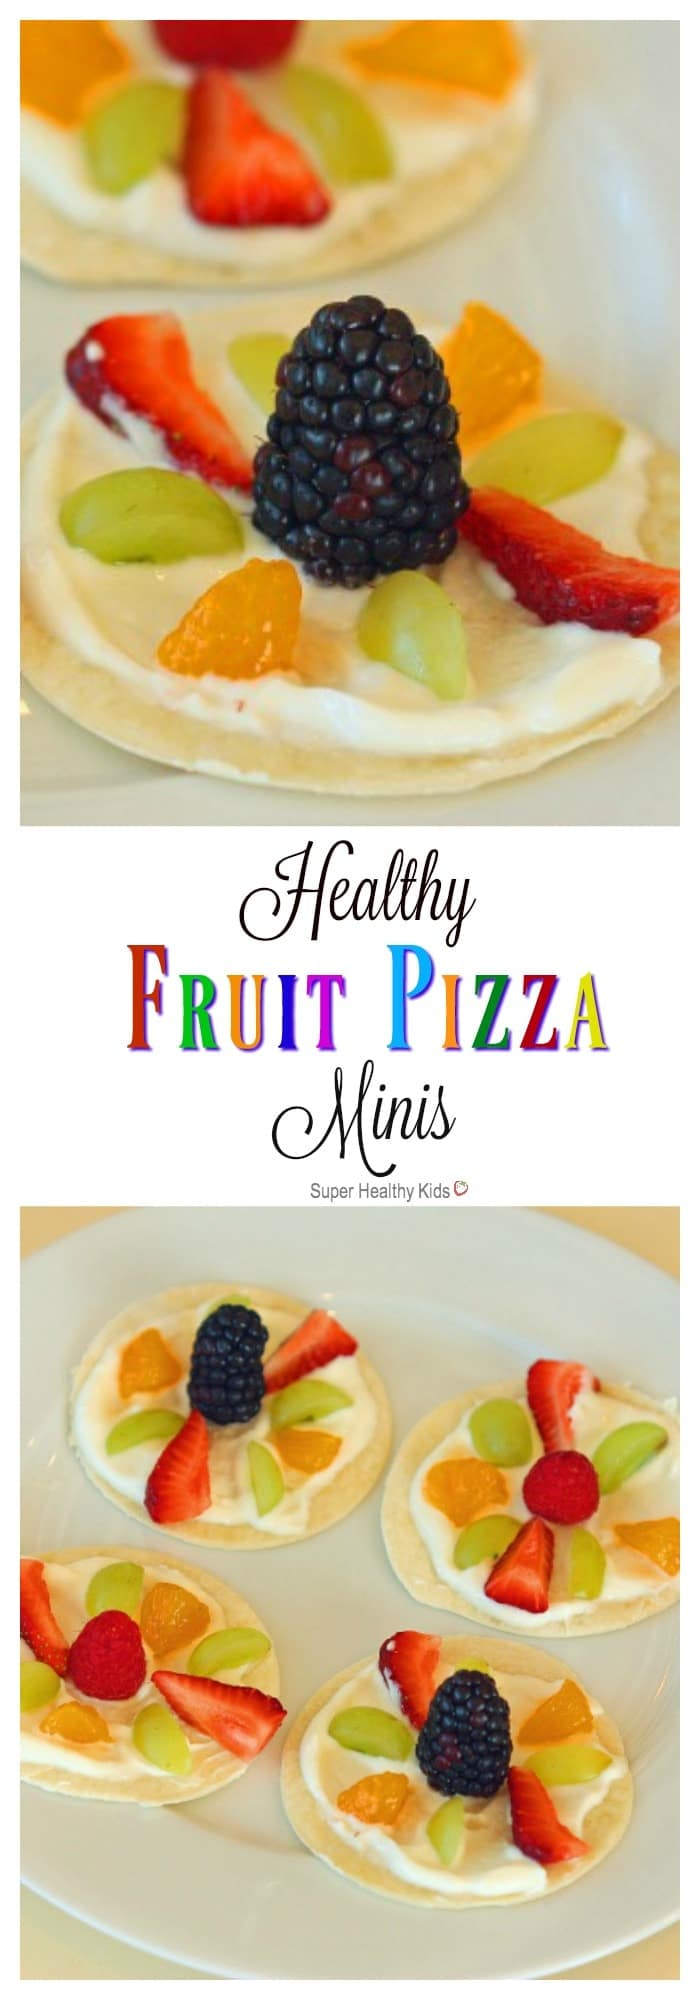 Healthy Fruit Pizza Minis. A quick, no-bake snack that will not disappoint! https://www.superhealthykids.com/healthy-fruit-pizza-minis/